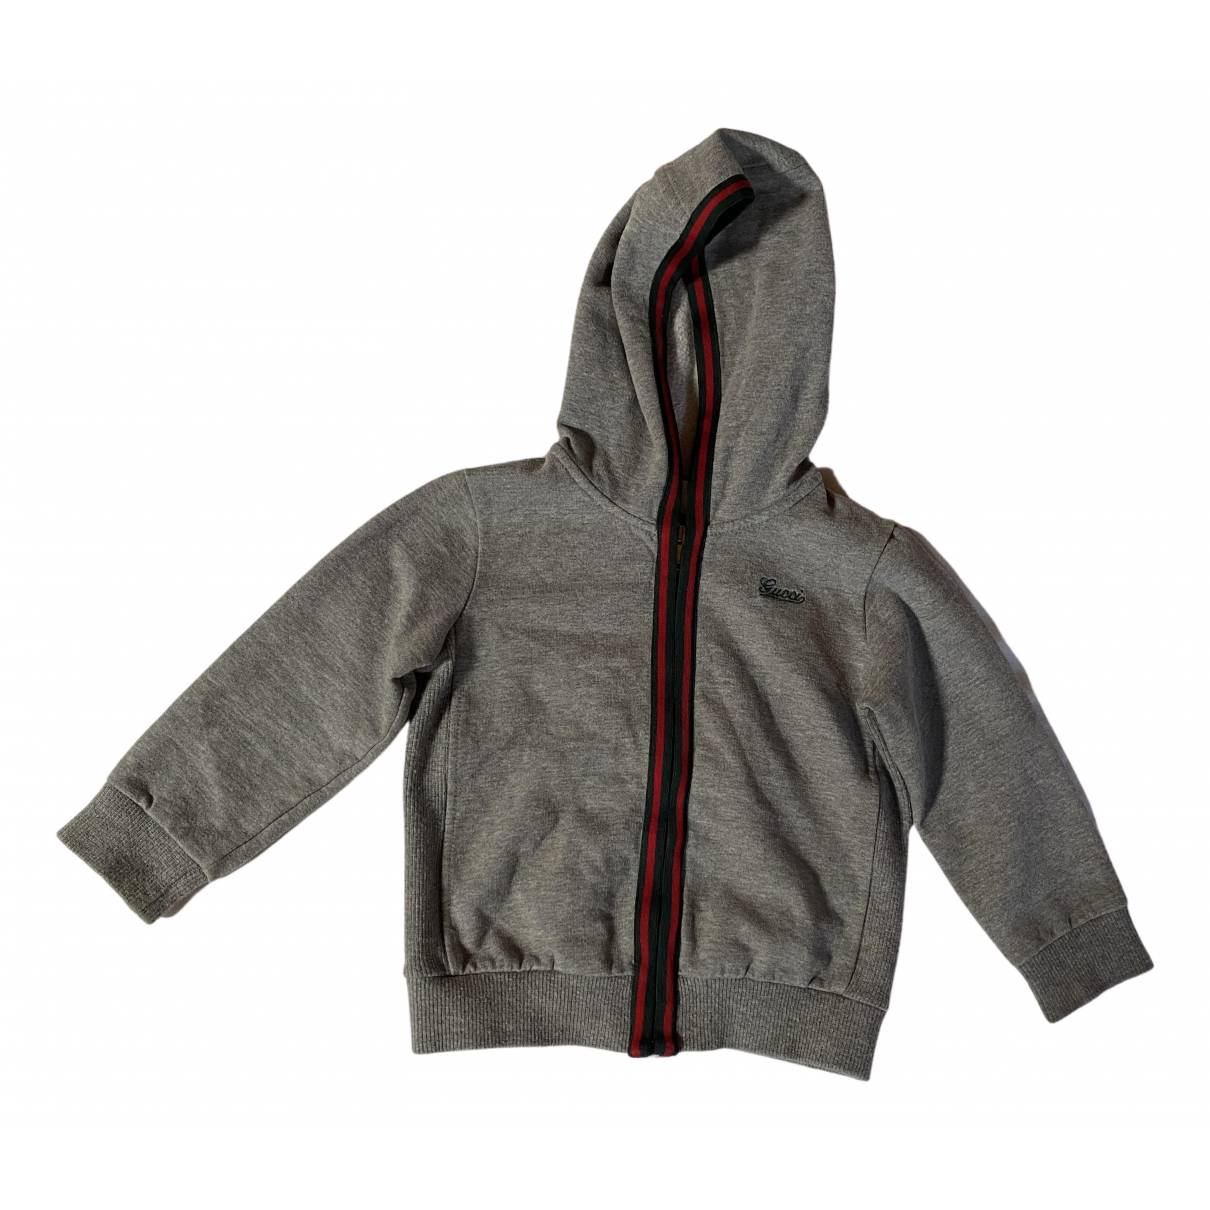 Gucci N Grey Cotton Knitwear for Kids 12 months - up to 74cm FR